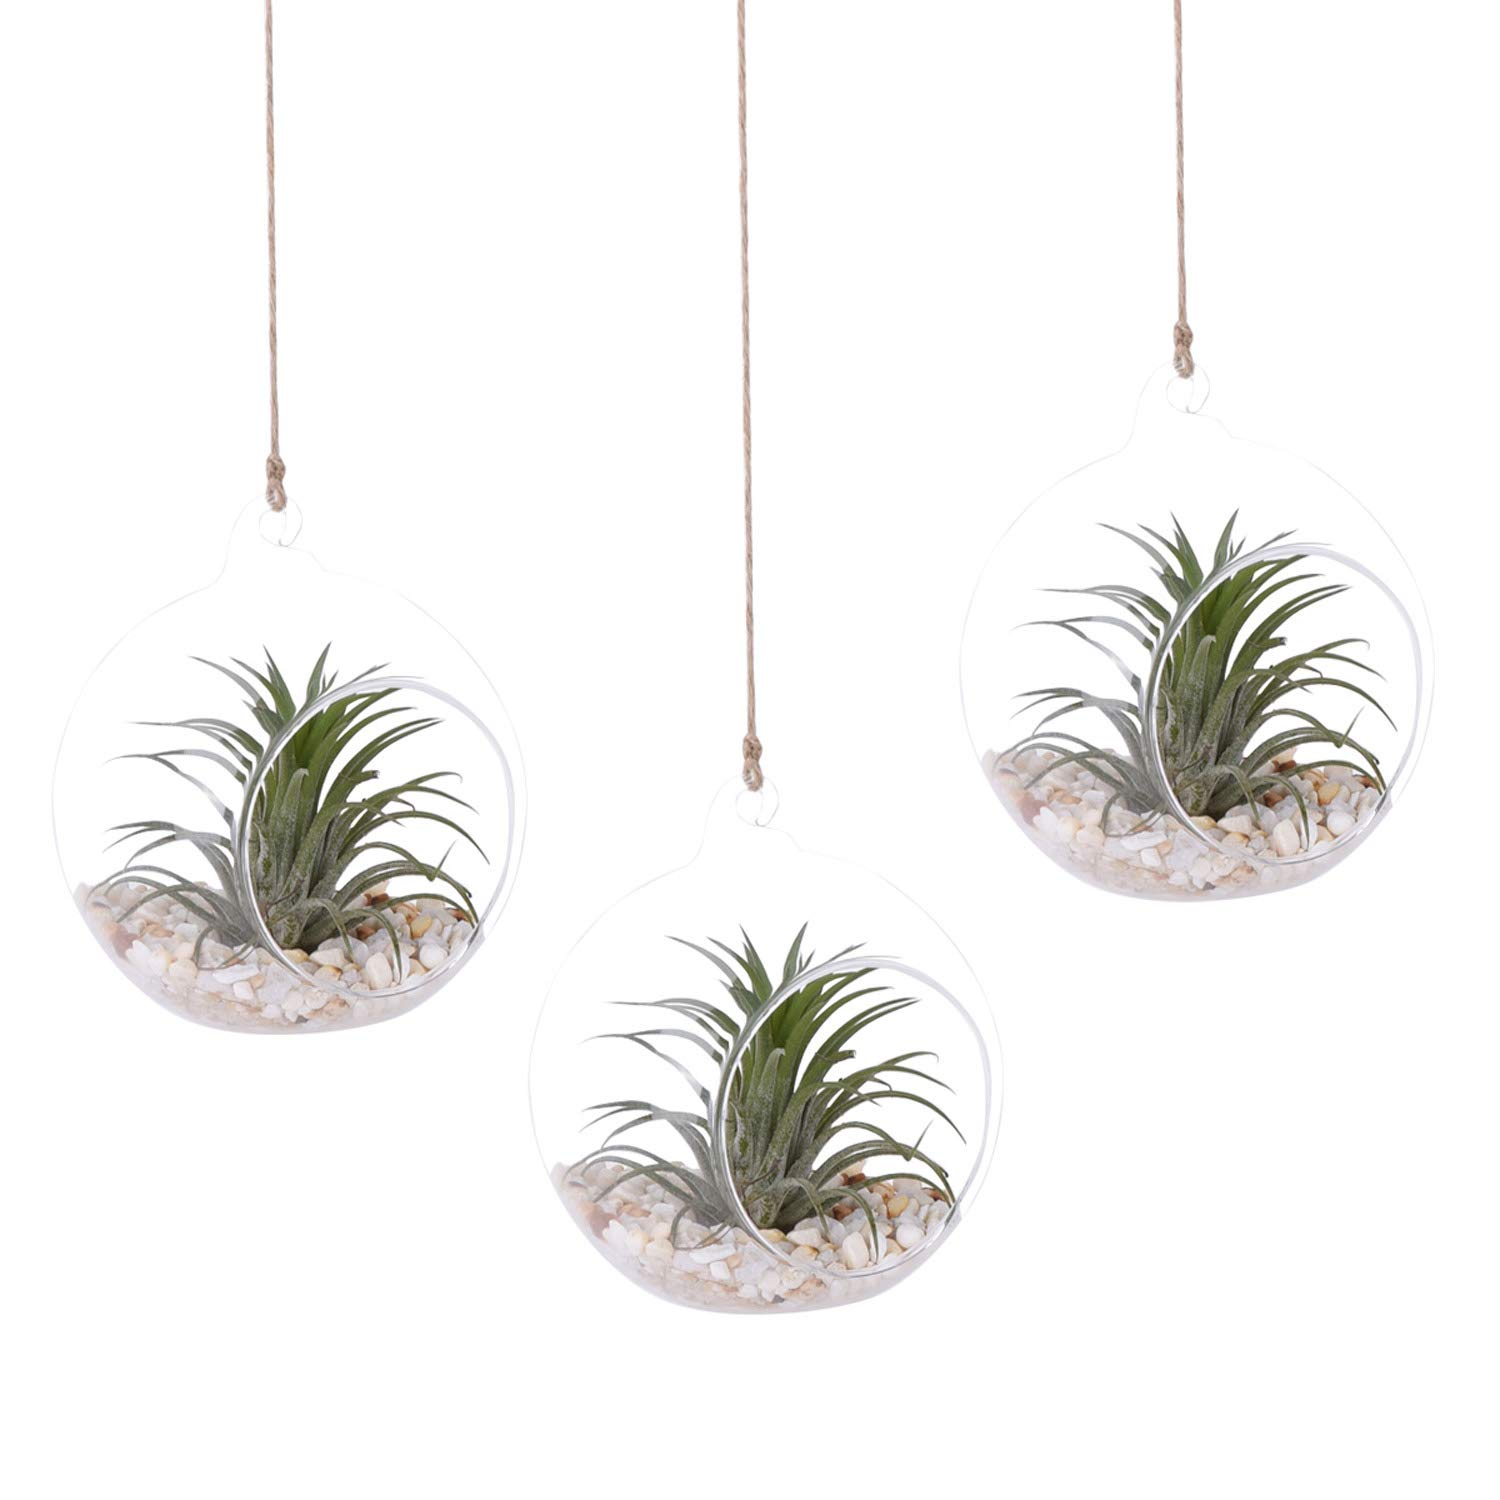 AUTOARK 4 3/4 inches Glass Globe - Hanging Plant Terrarium Glass Vase Succulent Air Plant,Candle Holder,Home & Office Decor Accent,3 Pack,APT-006